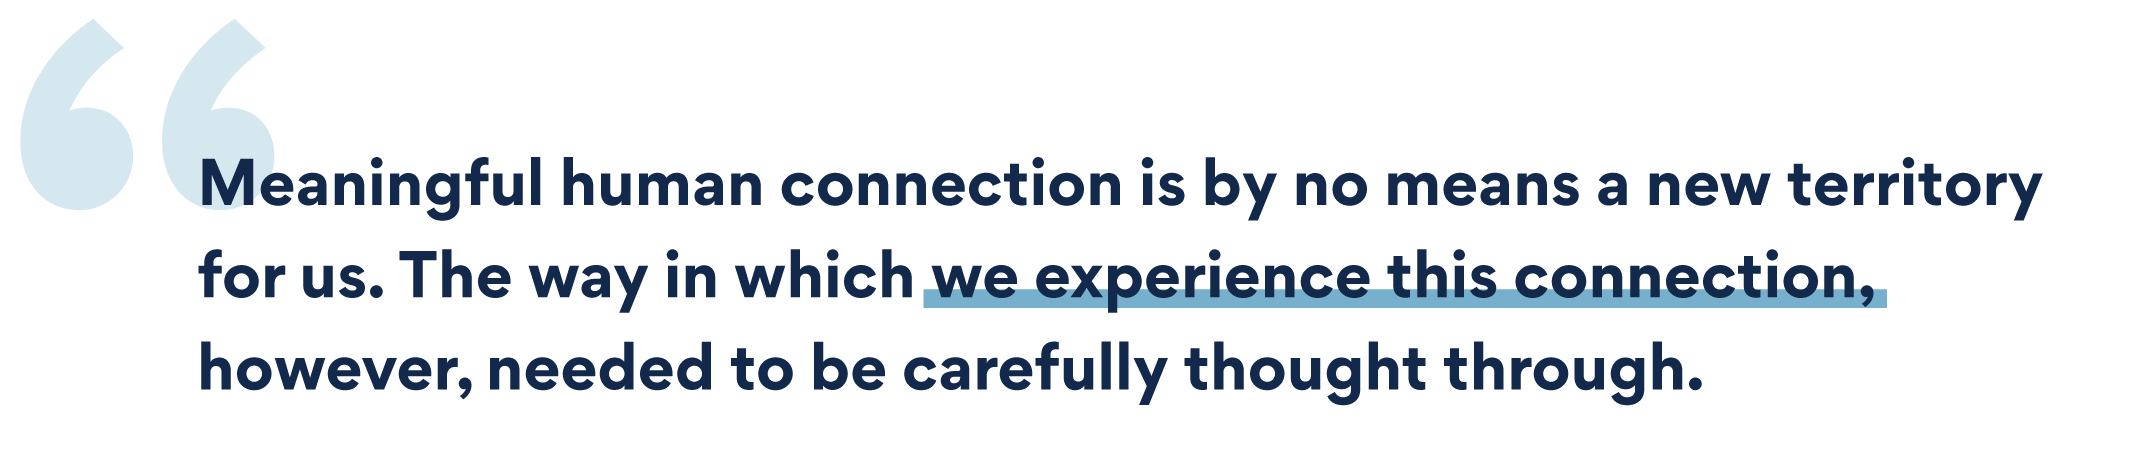 Meaningful-human-connection-is-by-no-means-a-new-territory-for-us.-The-way-in-which-we-experience-this-connection,-however,-needed-to-be-carefully-thought-through.